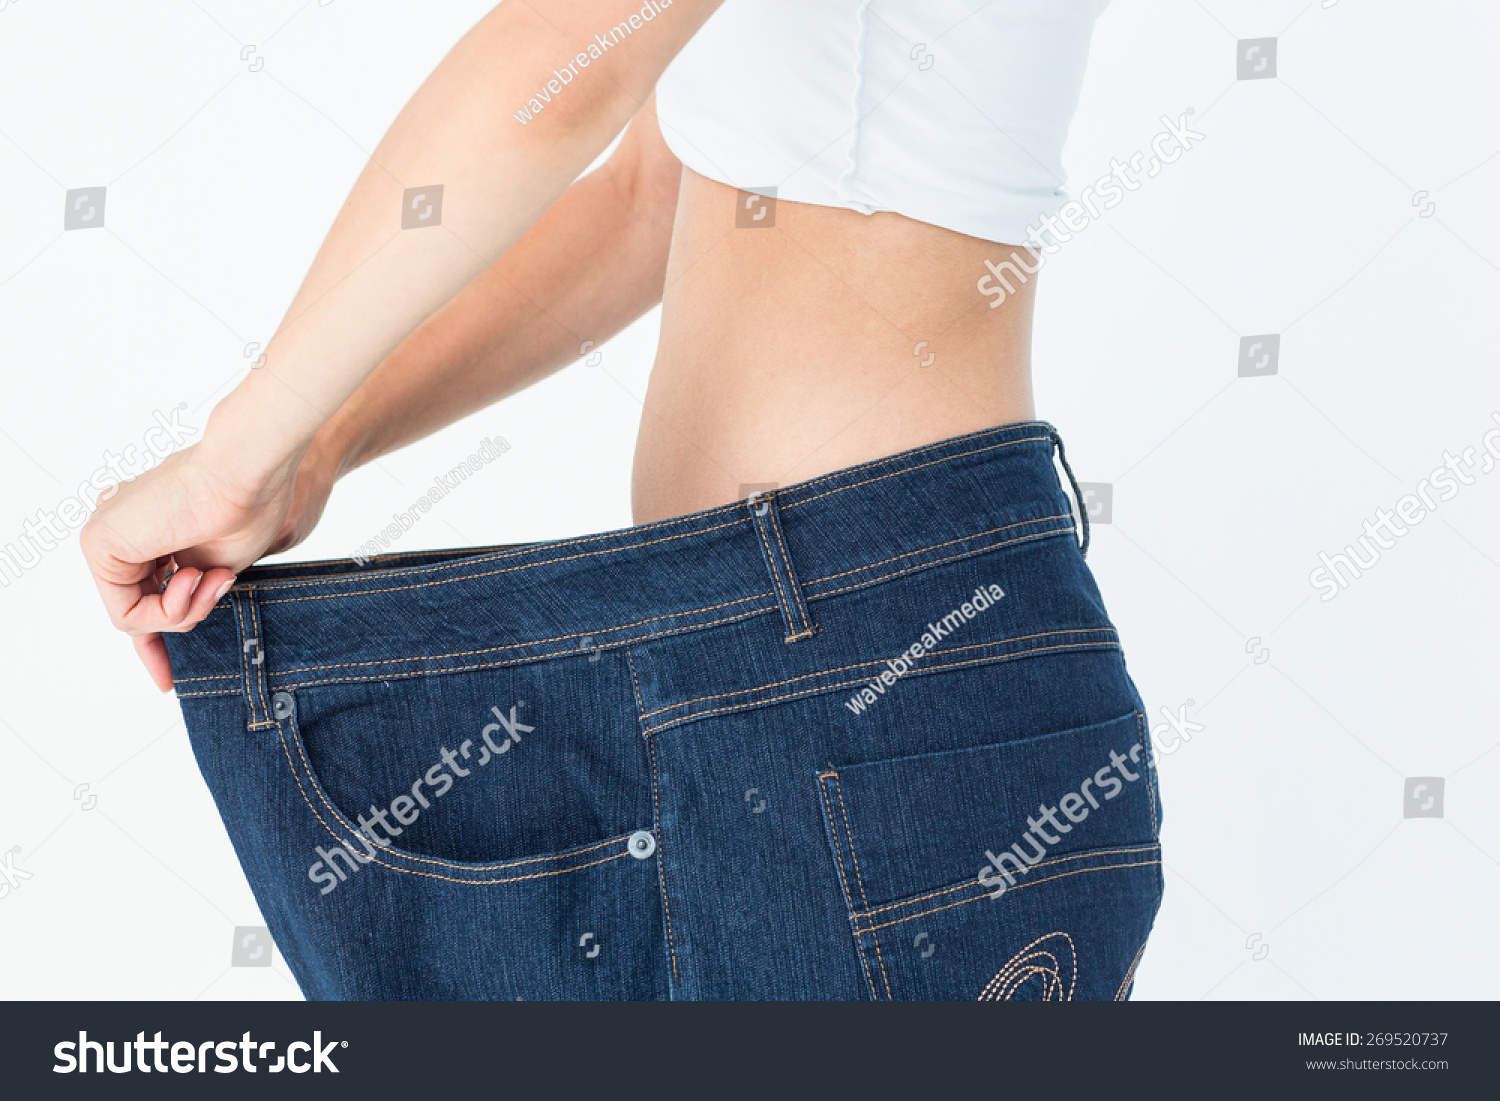 Background image too big - Woman Belly In Too Big Pants On White Background